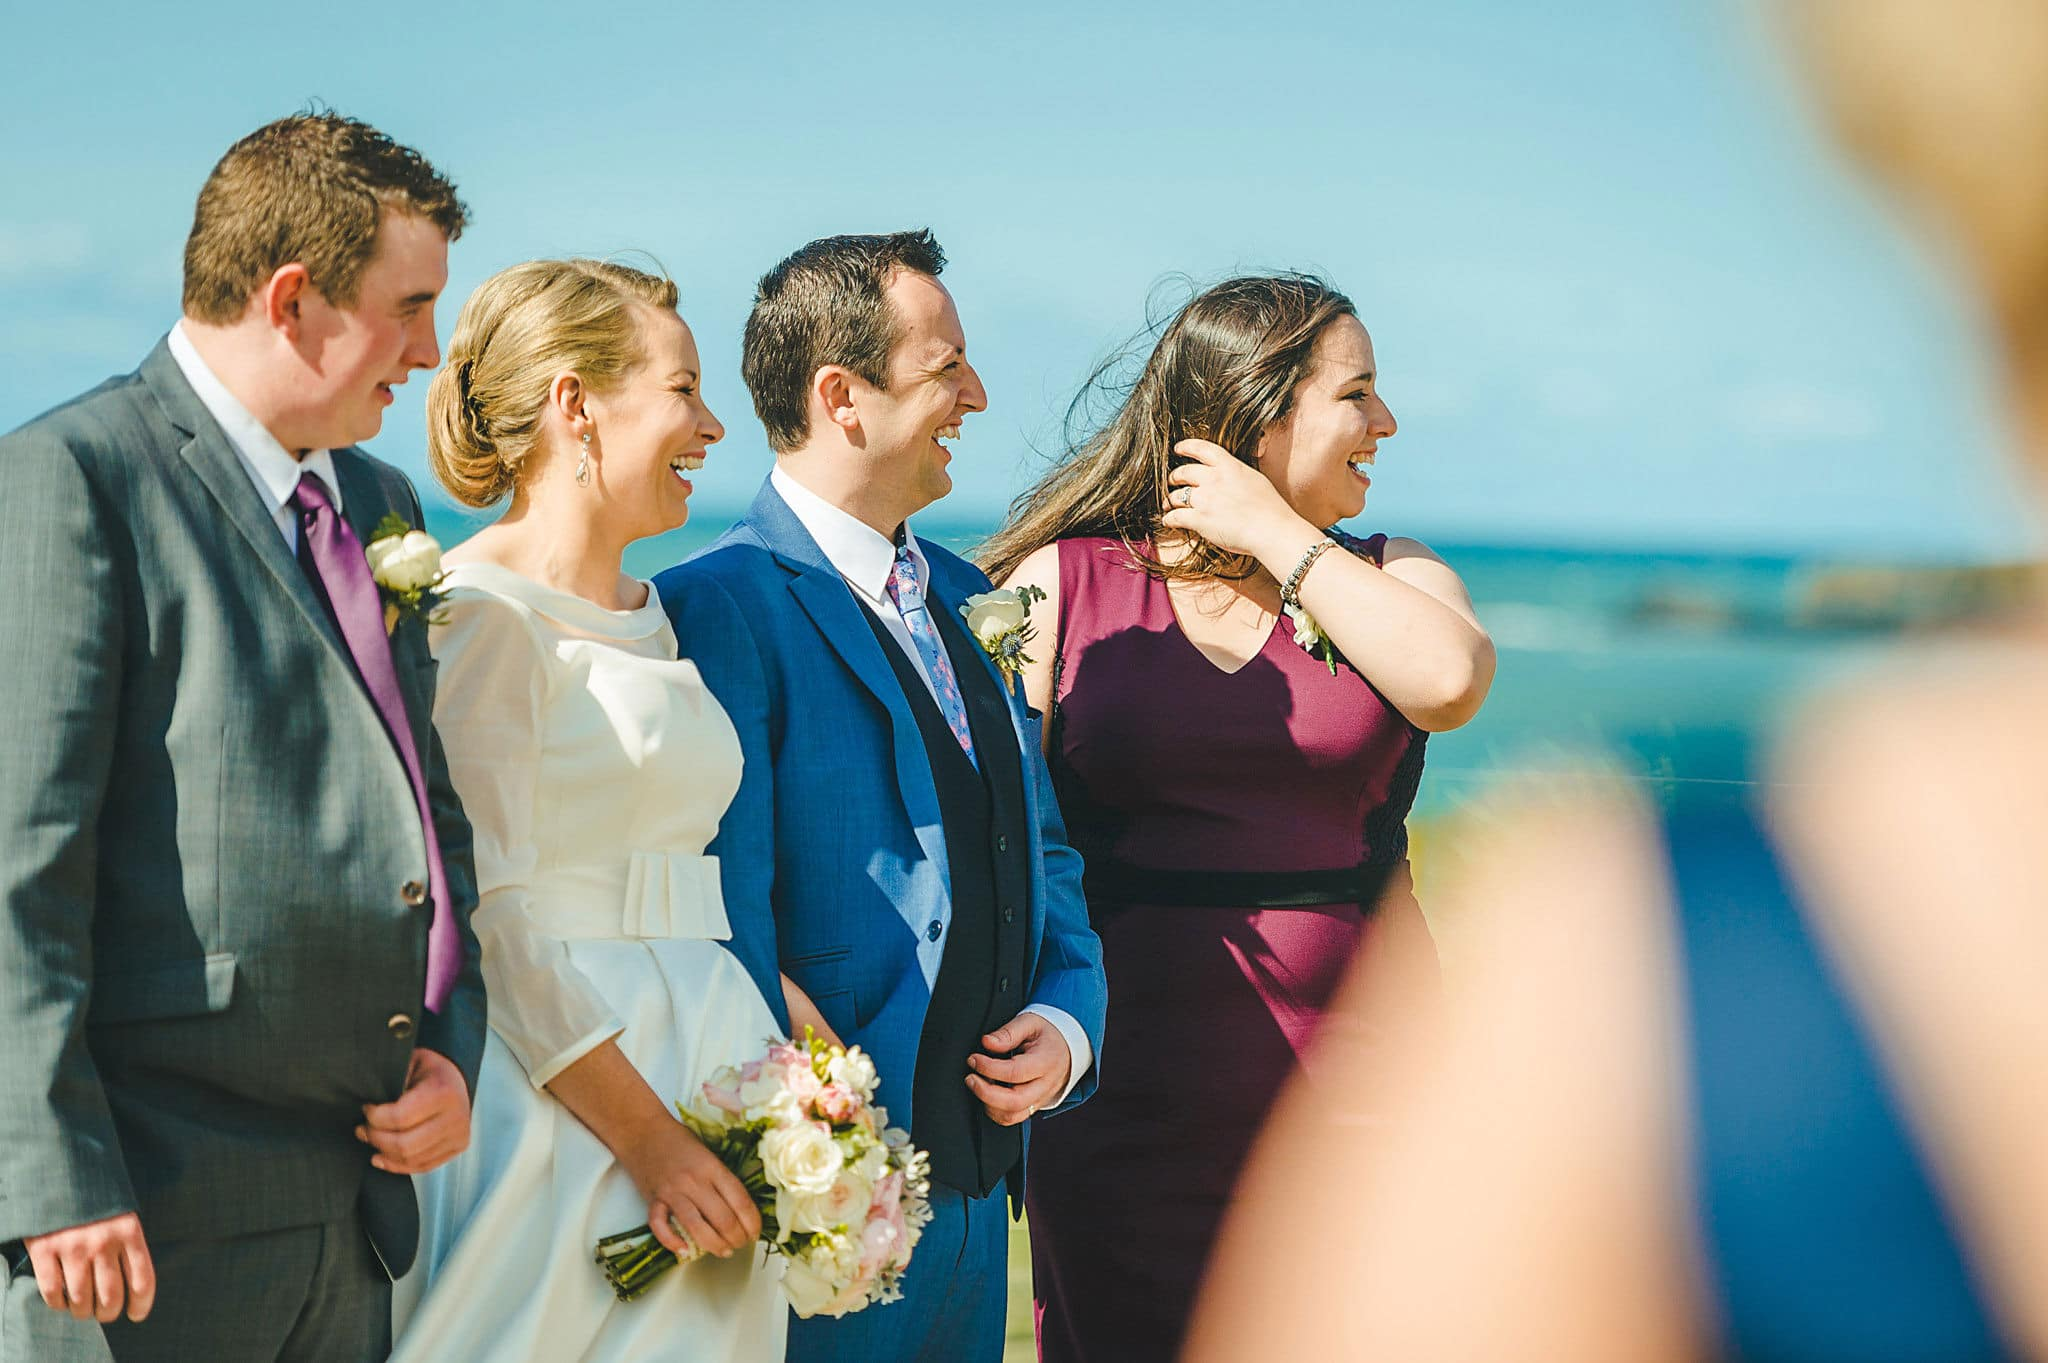 wedding-photography-at-the-cliff-hotel-cardigan (54)